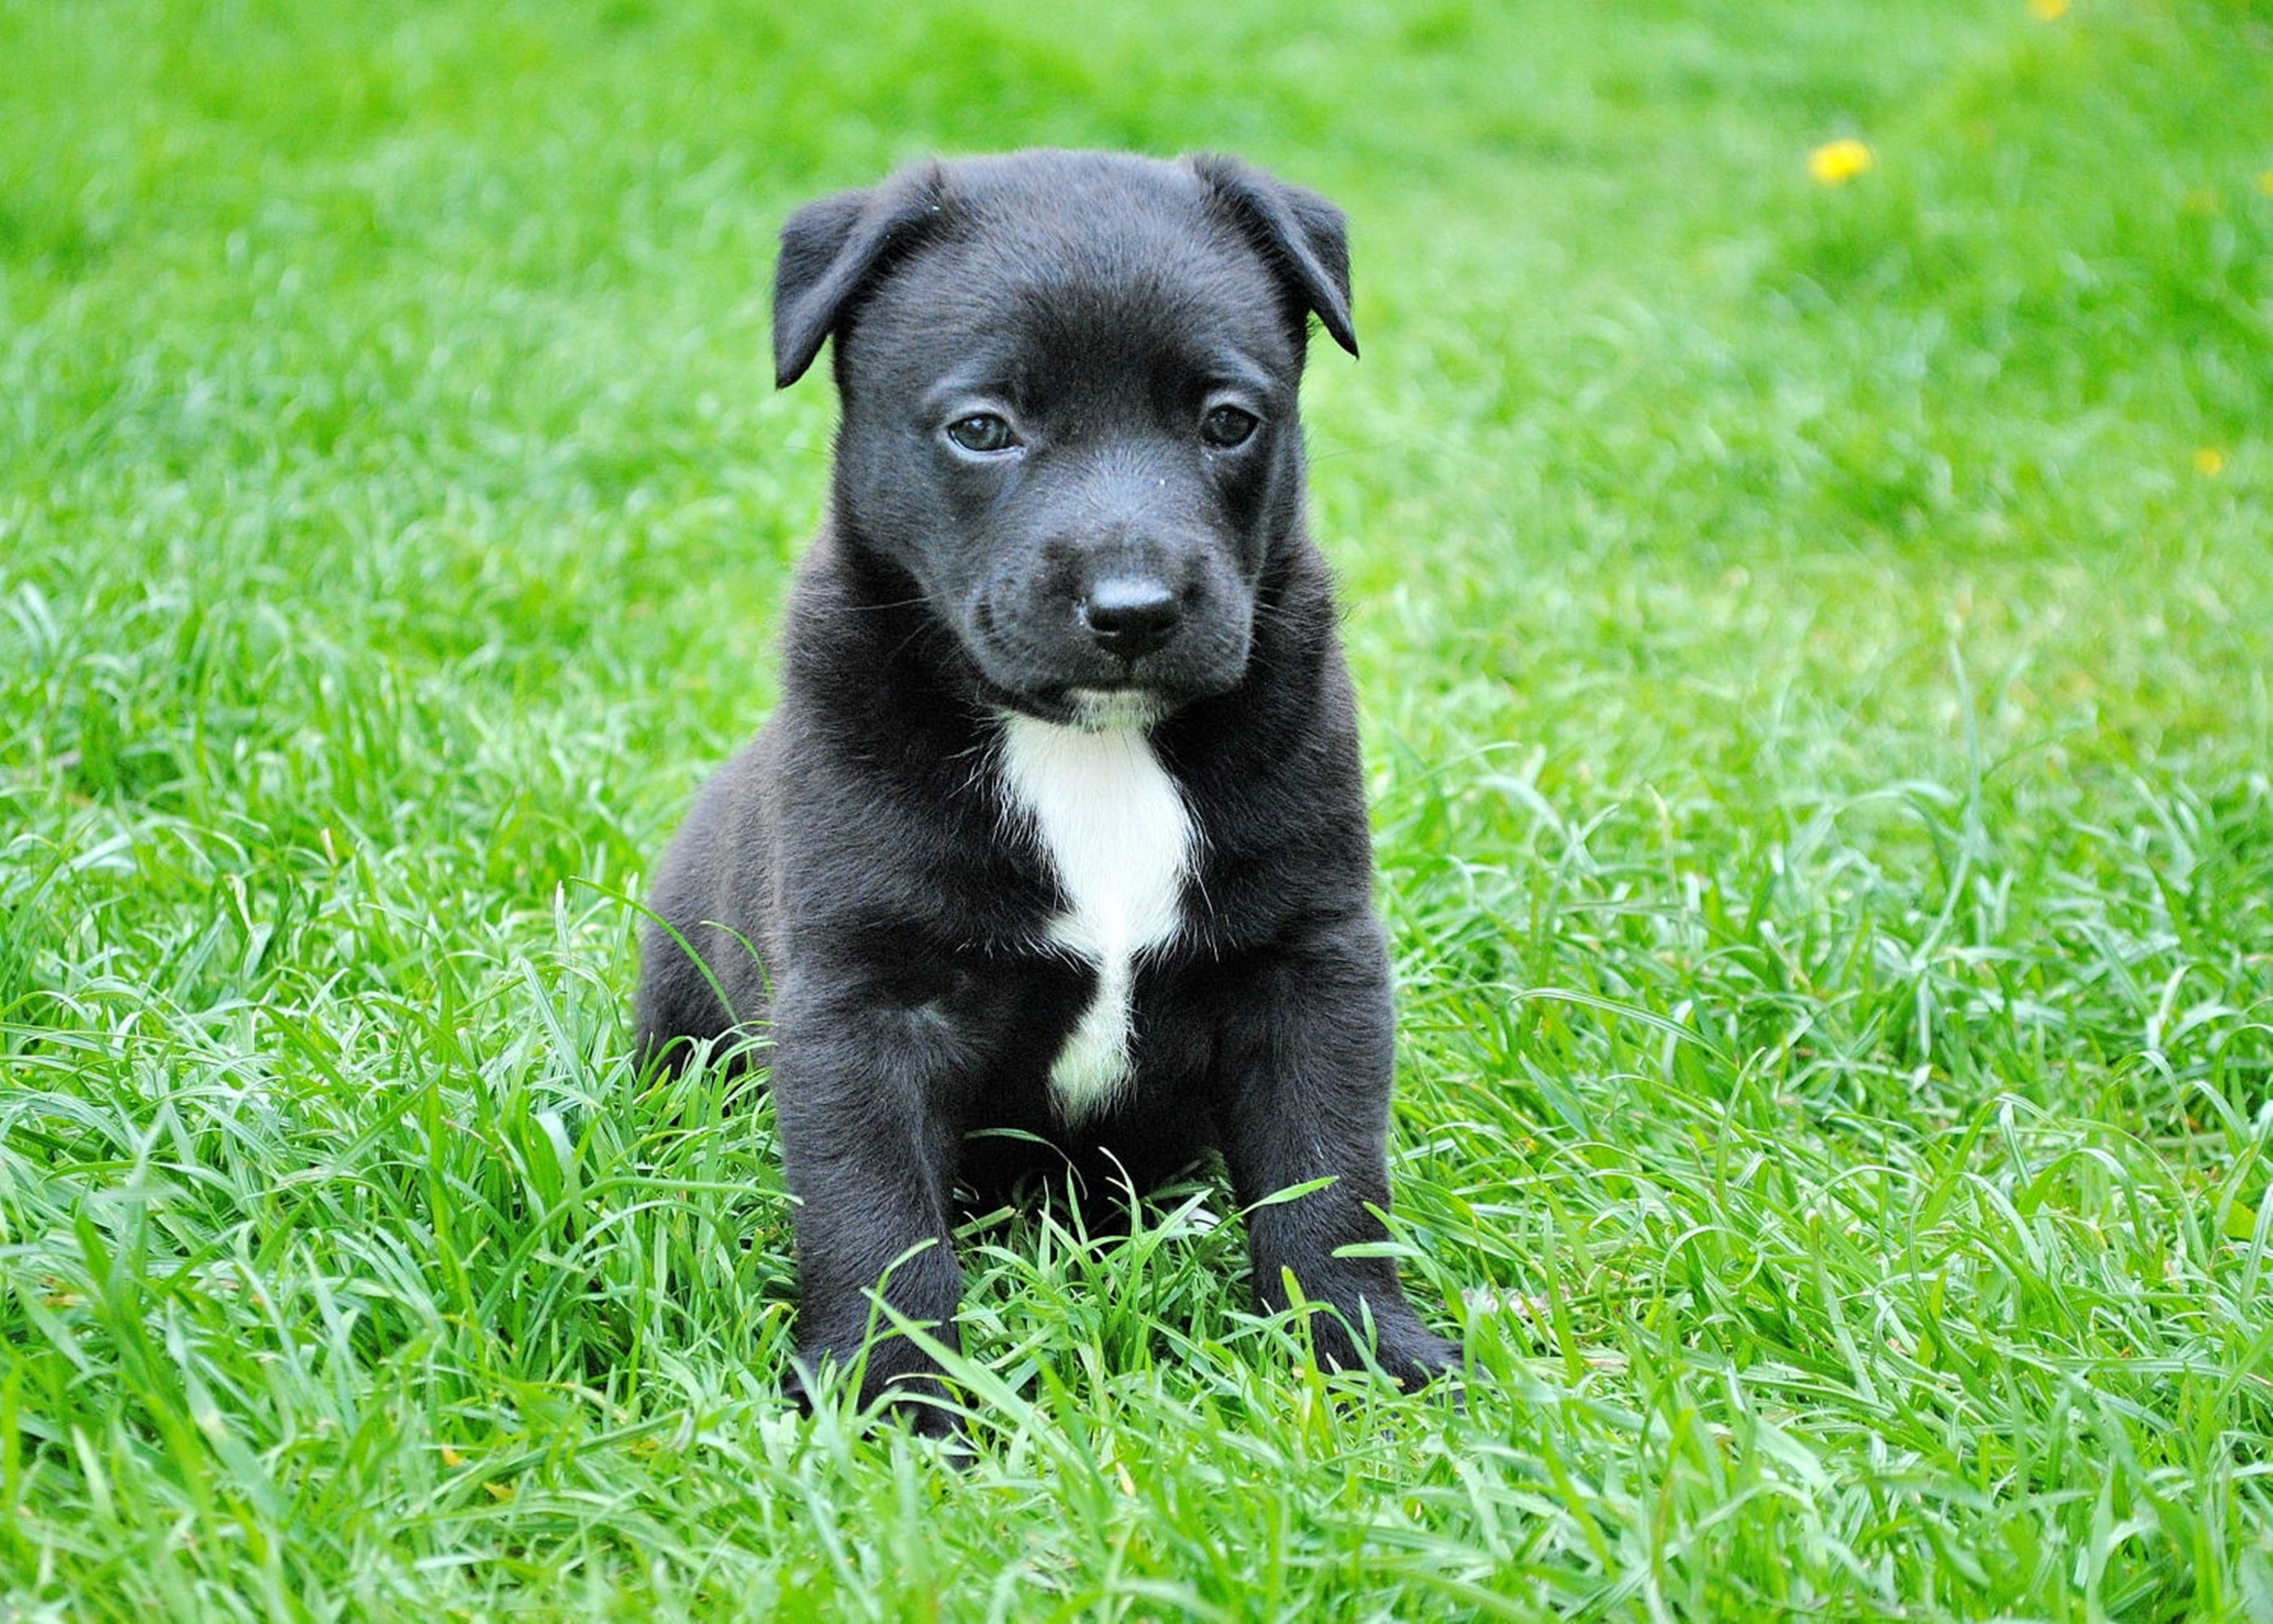 A black puppy sits in the grass